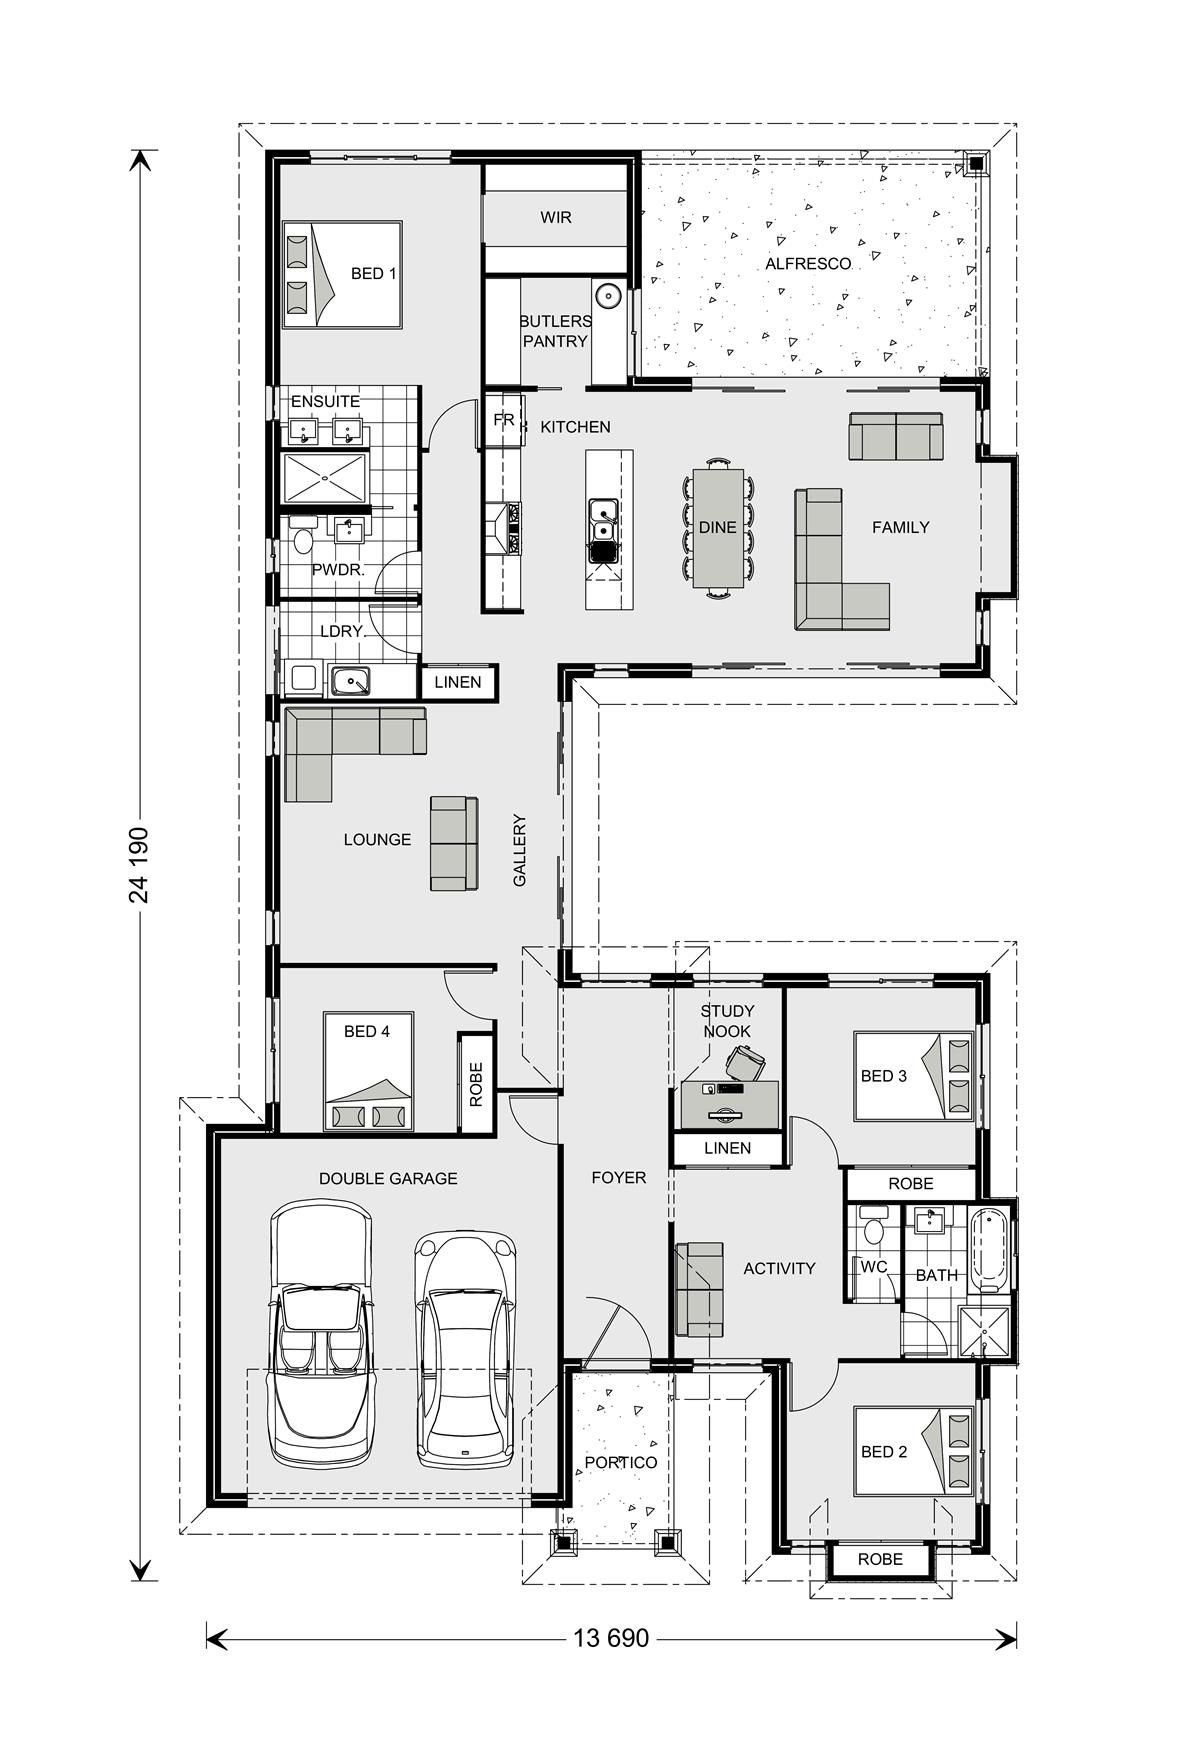 Mandalay 256 Our Designs New South Wales Builder Gj Gardner Homes New South Wales Home Design Floor Plans Contemporary House Plans House Design